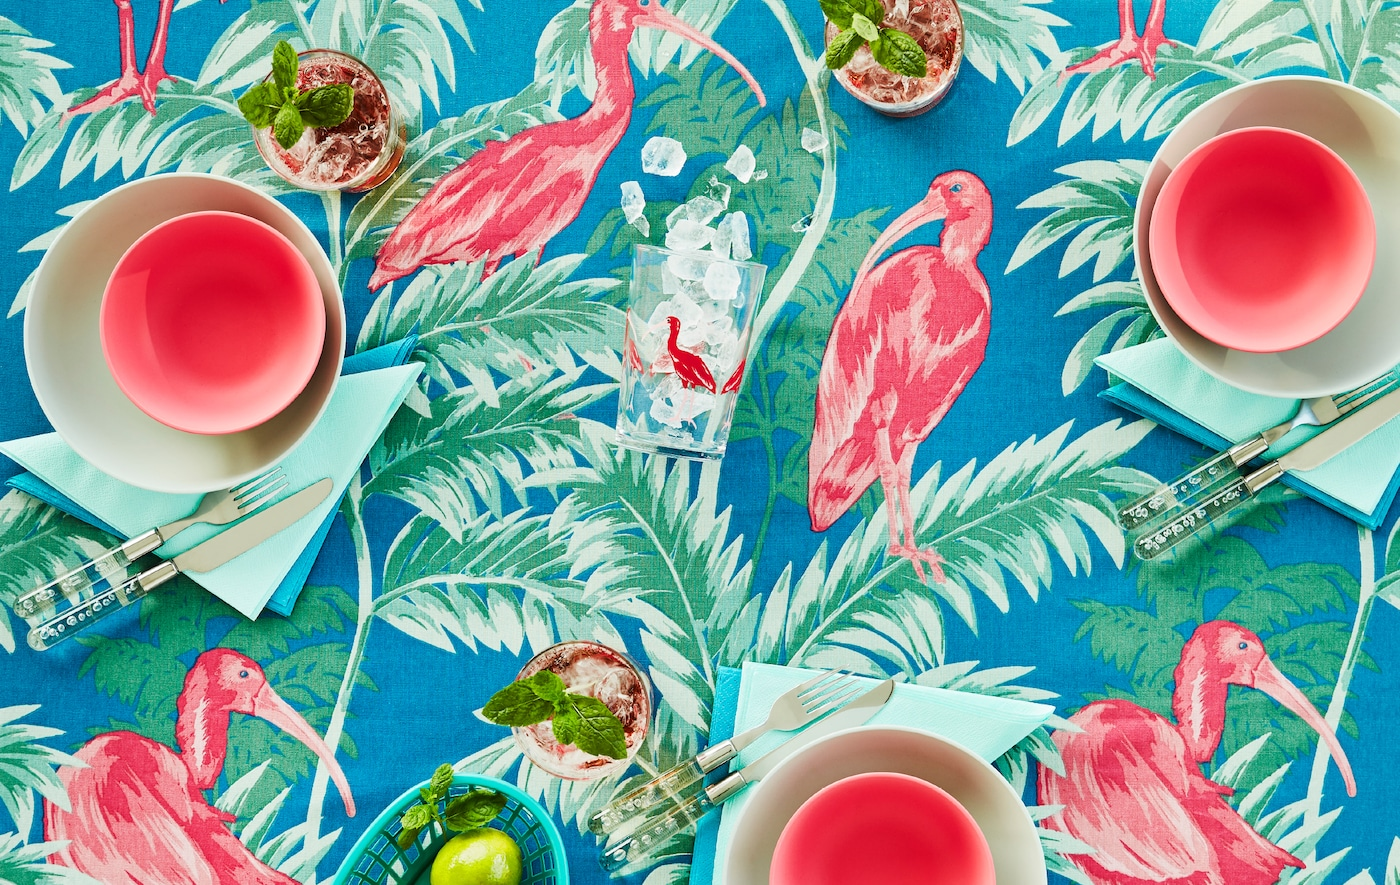 Tabletop with a cloth with a colorful, tropical pattern in pink, green and blue. The table is set with tableware to match.